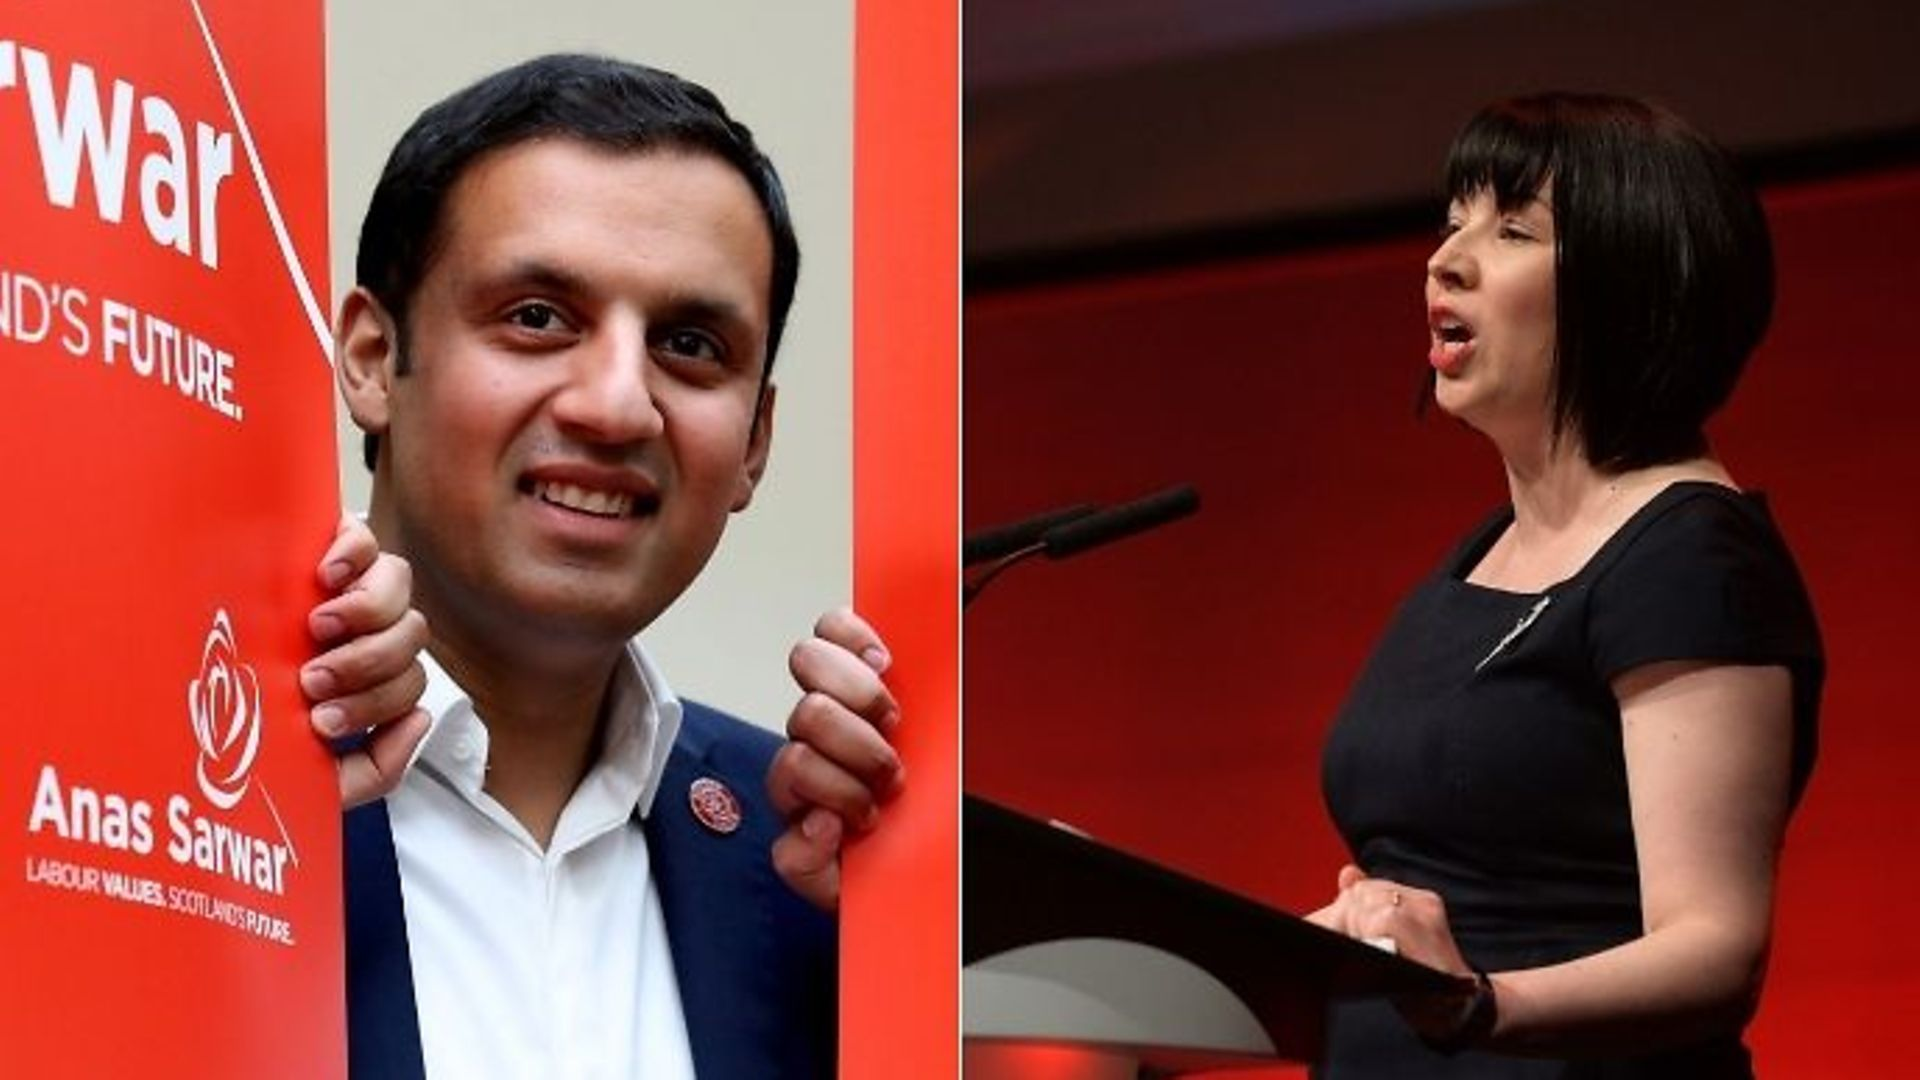 Anas Sarwar and Monica Lennon compete for Scottish Labour leadership - Credit: PA